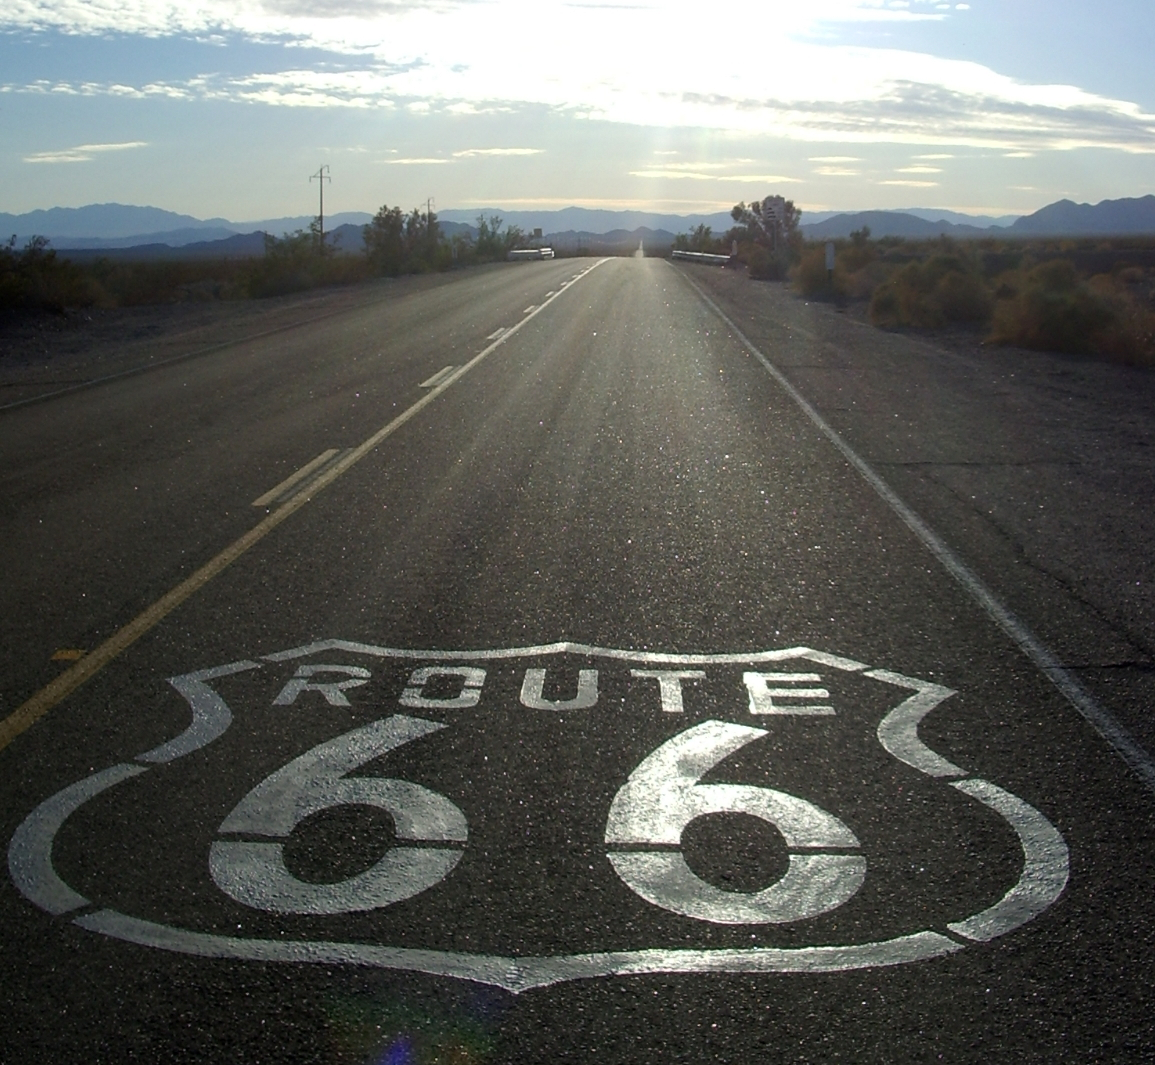 6 Amazing Stops On Route 66 Los Angeles To Grand Canyon That You MUST Visit